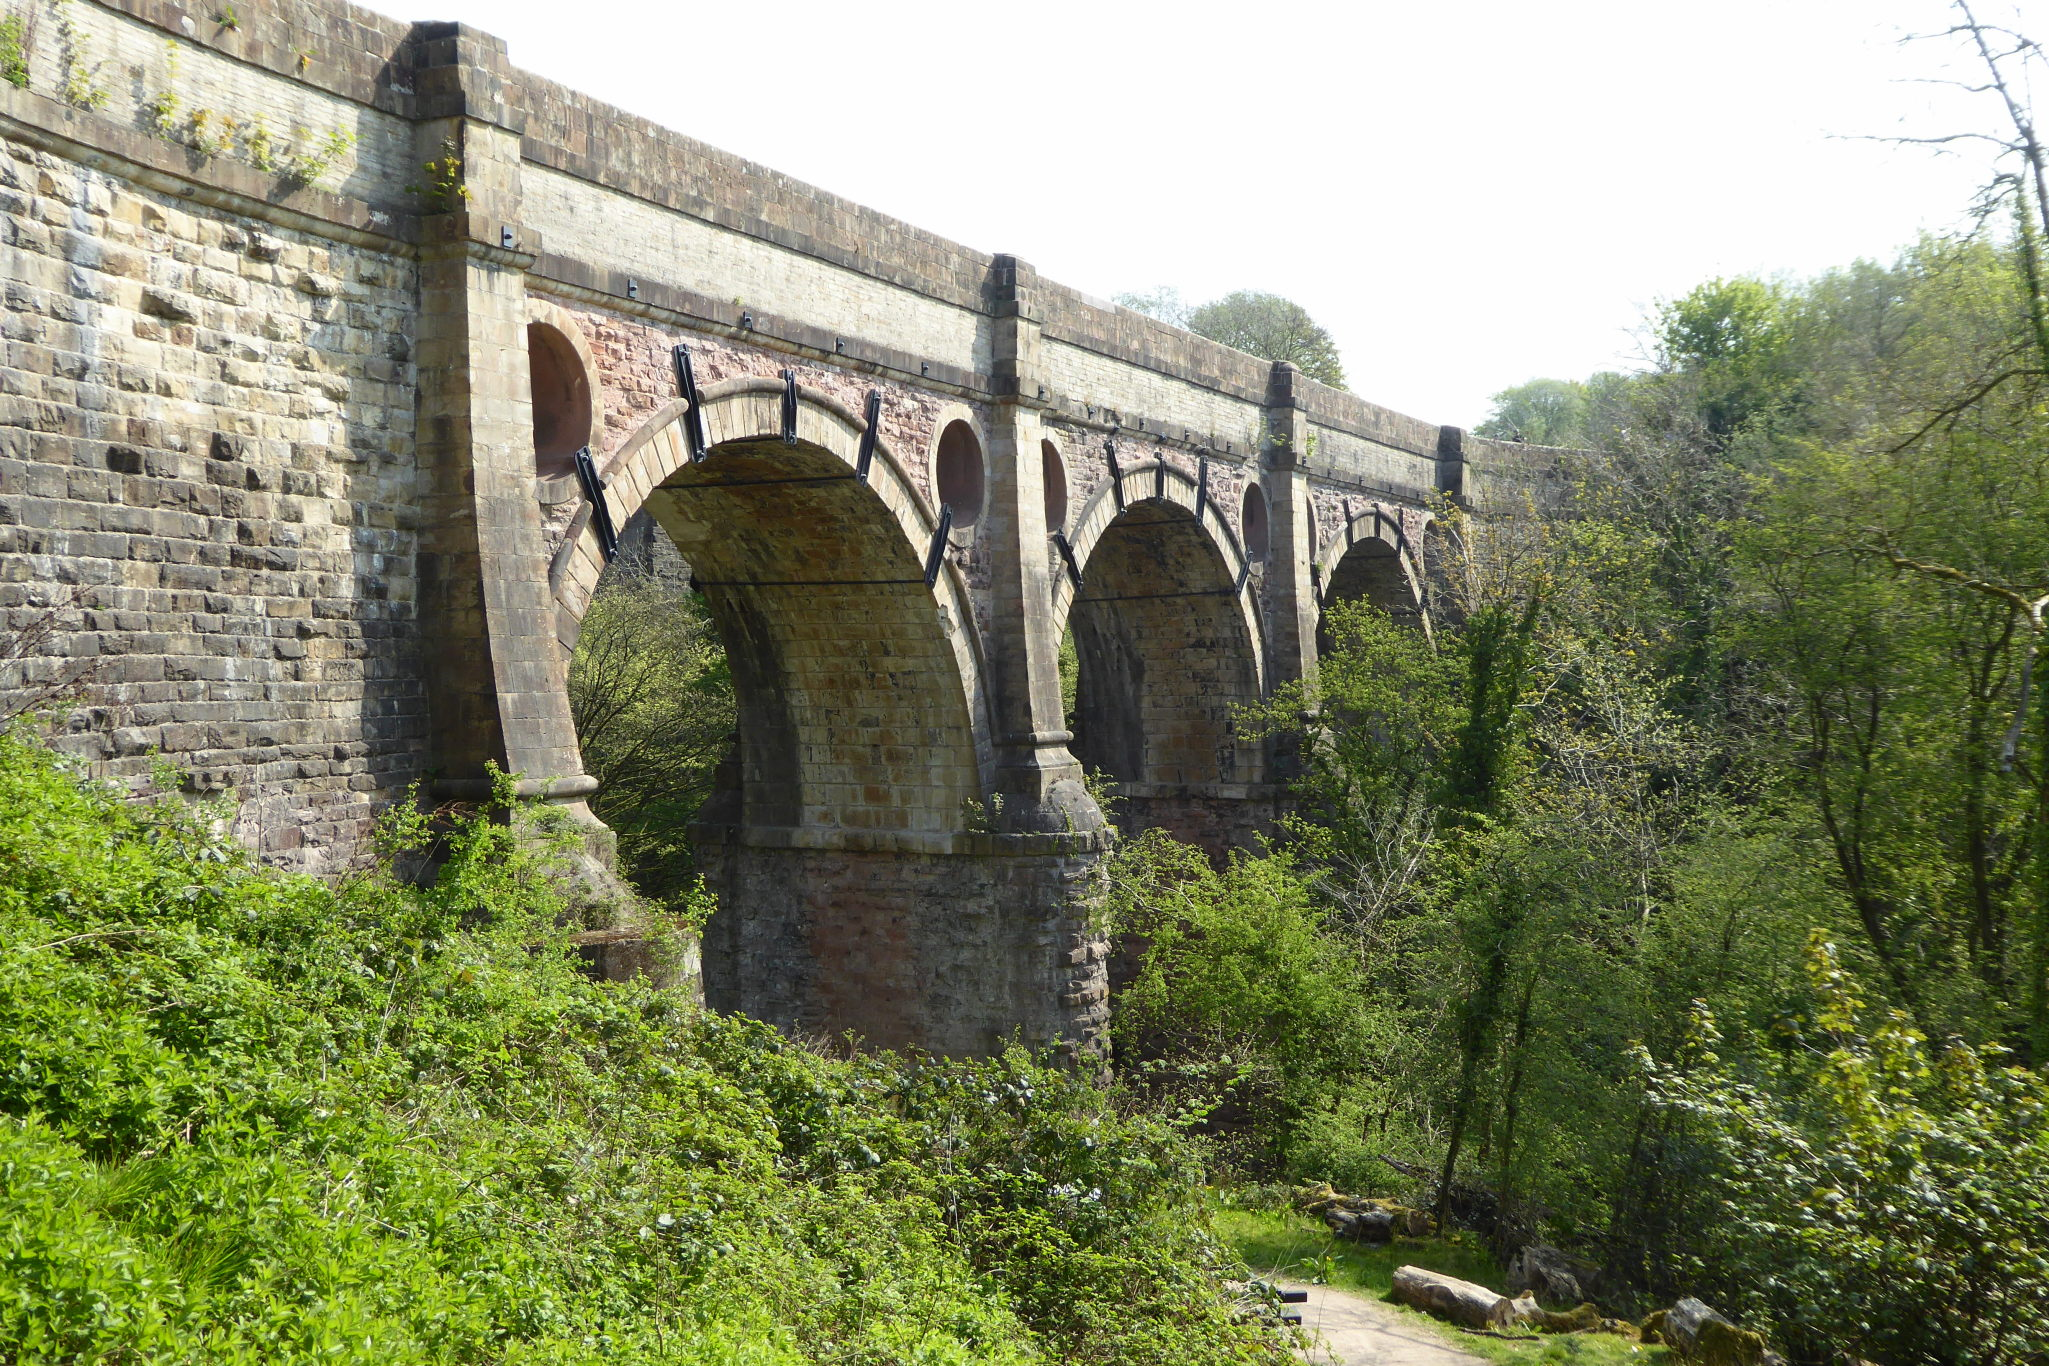 The mighty Marple Aqueduct